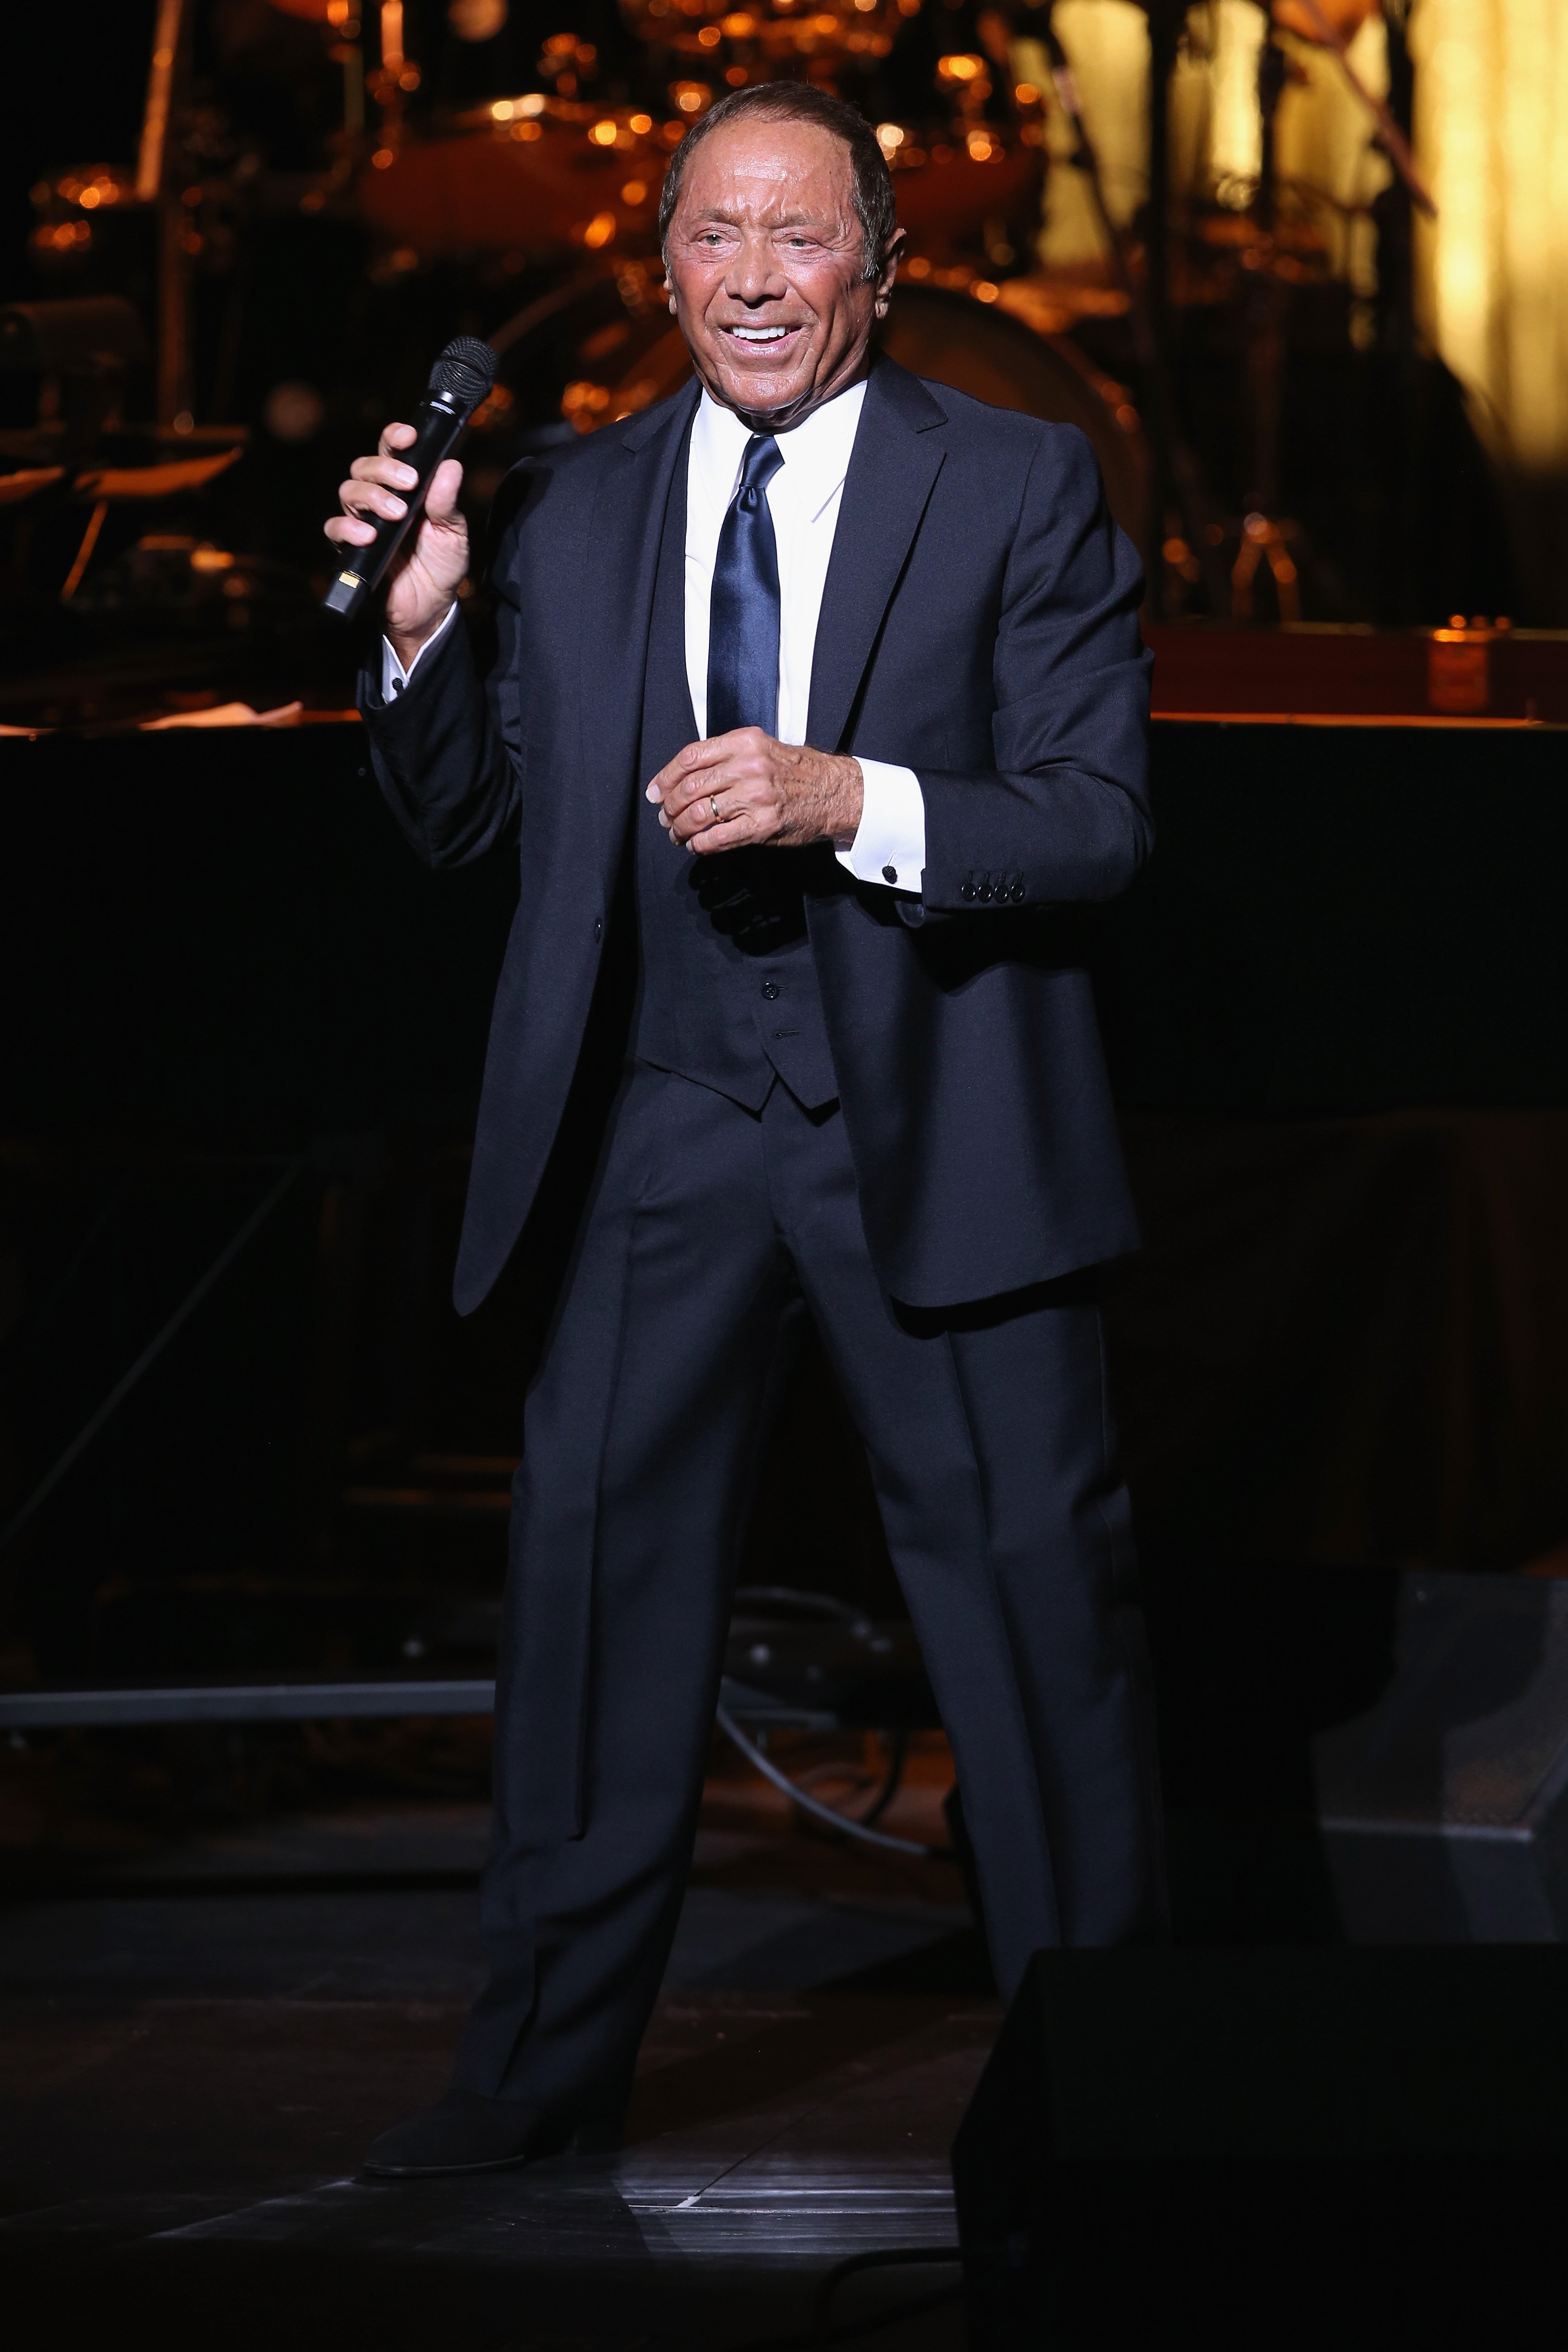 Paul Anka on August 26, 2017 in Thousand Oaks, California | Source: Getty Images